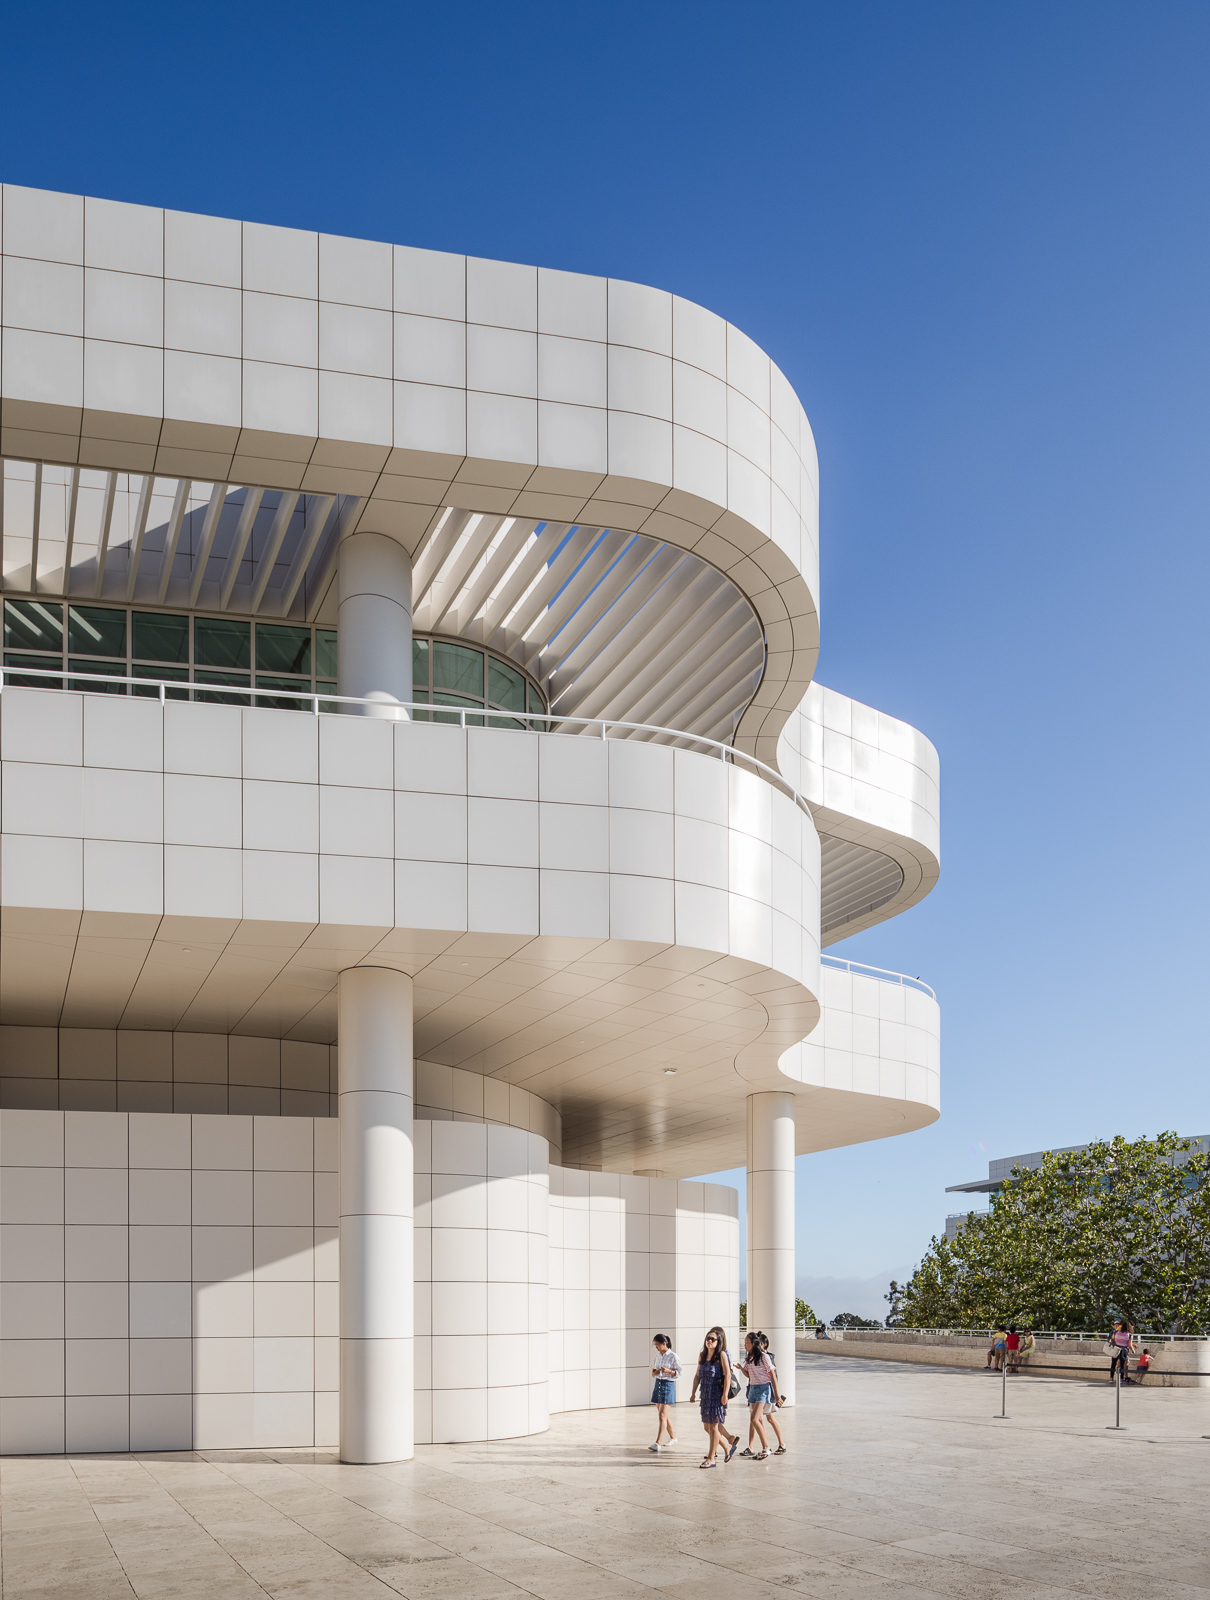 Details of the Getty Museum